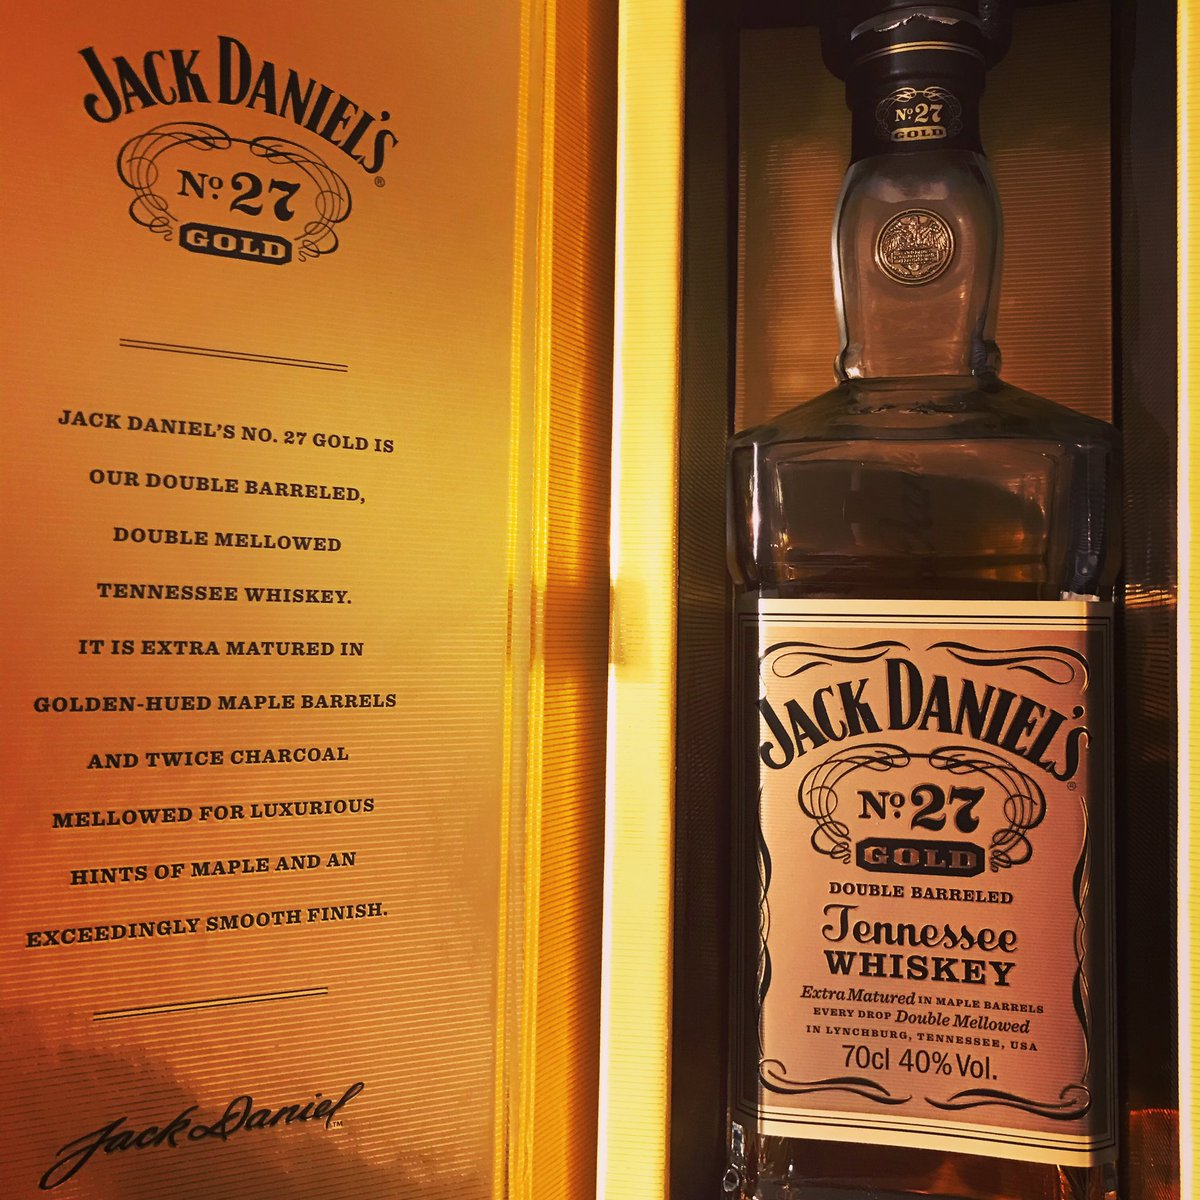 Something different and very nice too  - @JackDanielsUK @JackDaniels_US  #goldenknights  #sudburywhiskyclub #jackdaniels #jackdanielswhiskey pic.twitter.com/3dTBVwpXLH